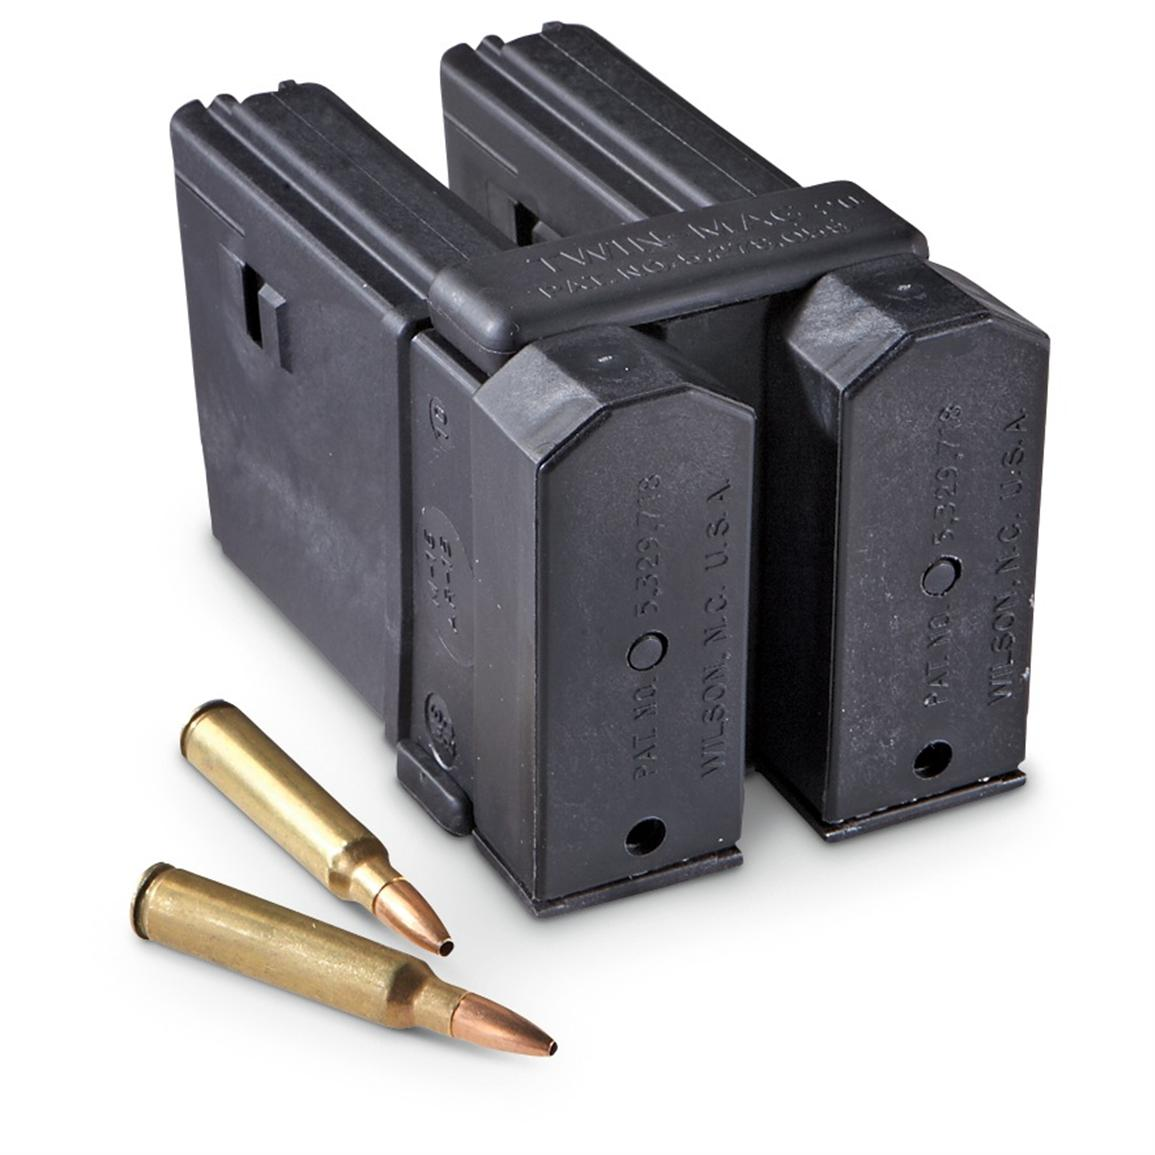 6 Thermold 20-rd. Mags with 3 Maglocks